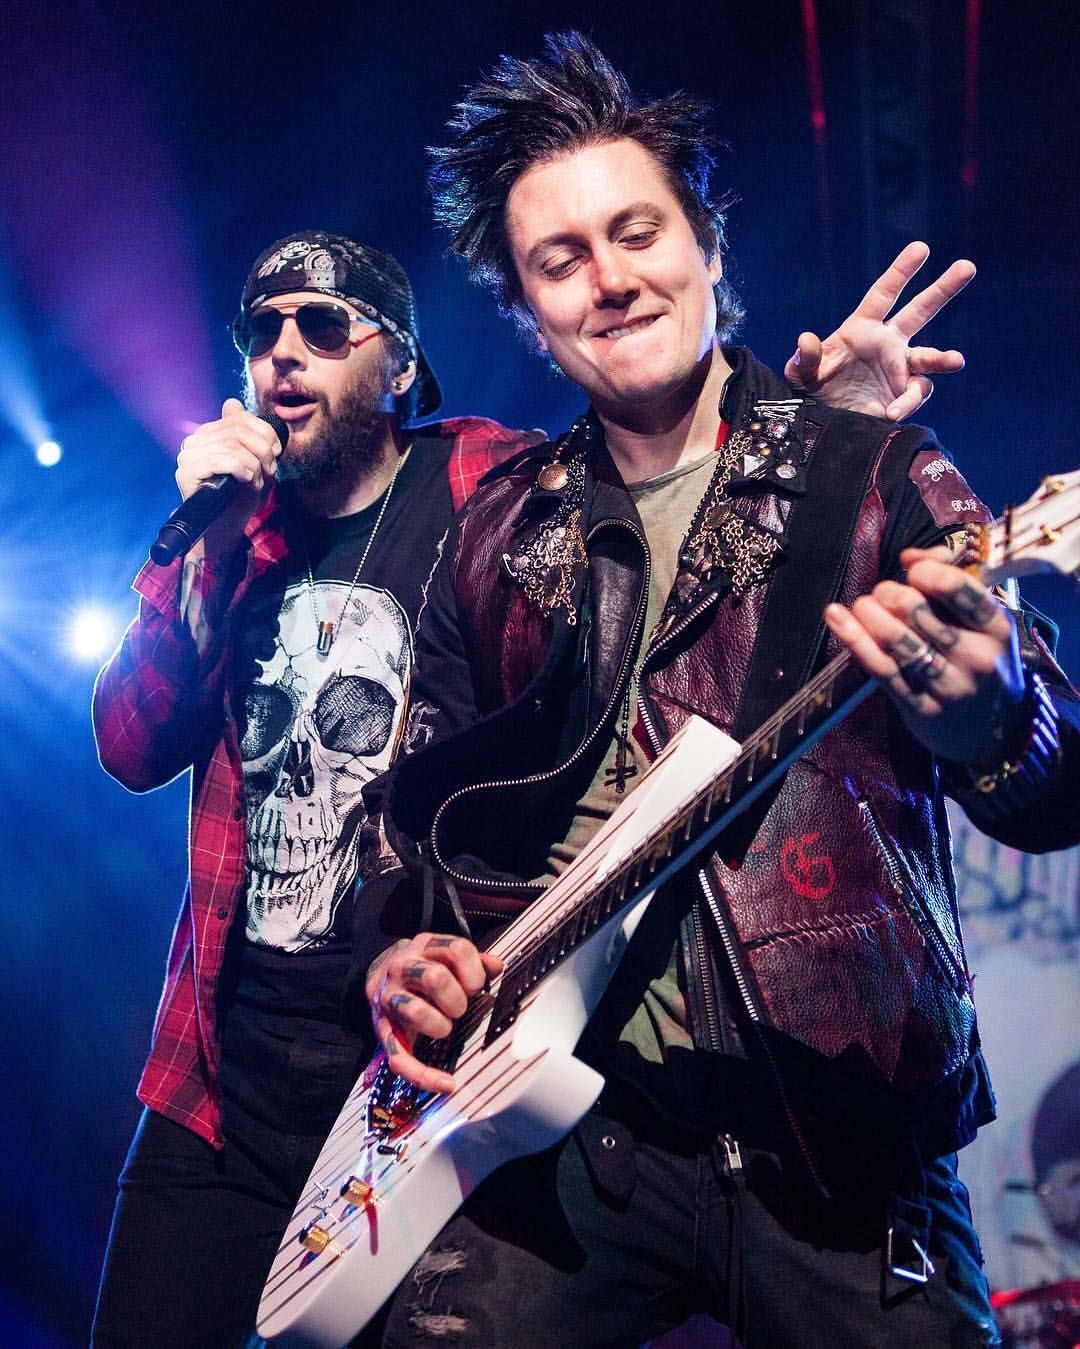 M shadows and synyster gates a7x in 2019 avenged - Matt shadows wallpaper ...